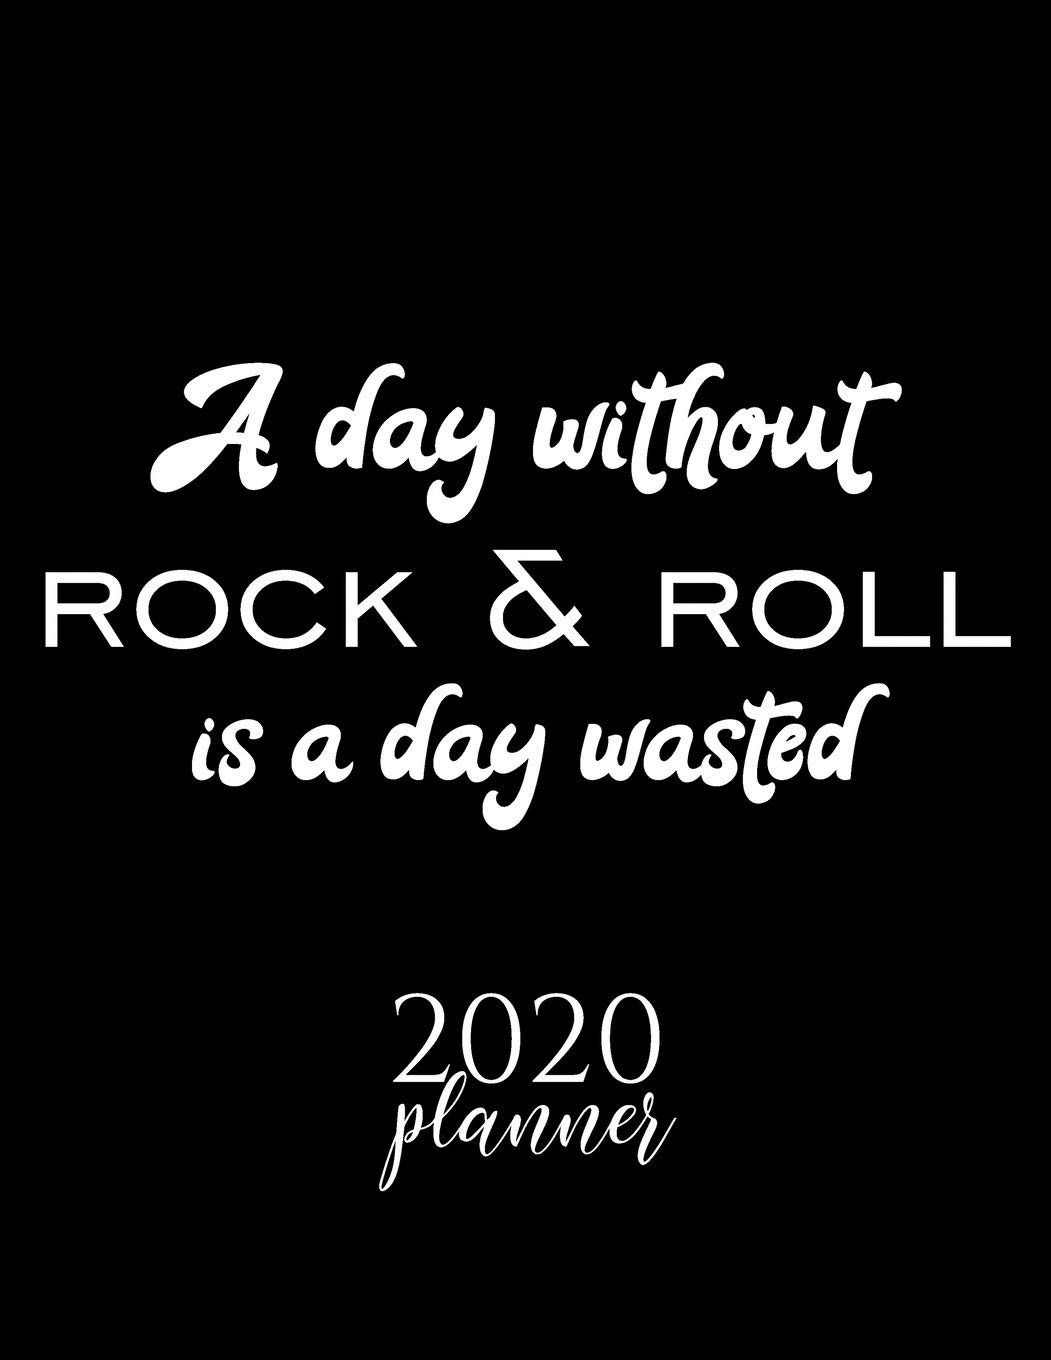 Rock And Roll Christmas 2020 A Day Without Rock & Roll Is A Day Wasted 2020 Planner: Nice 2020